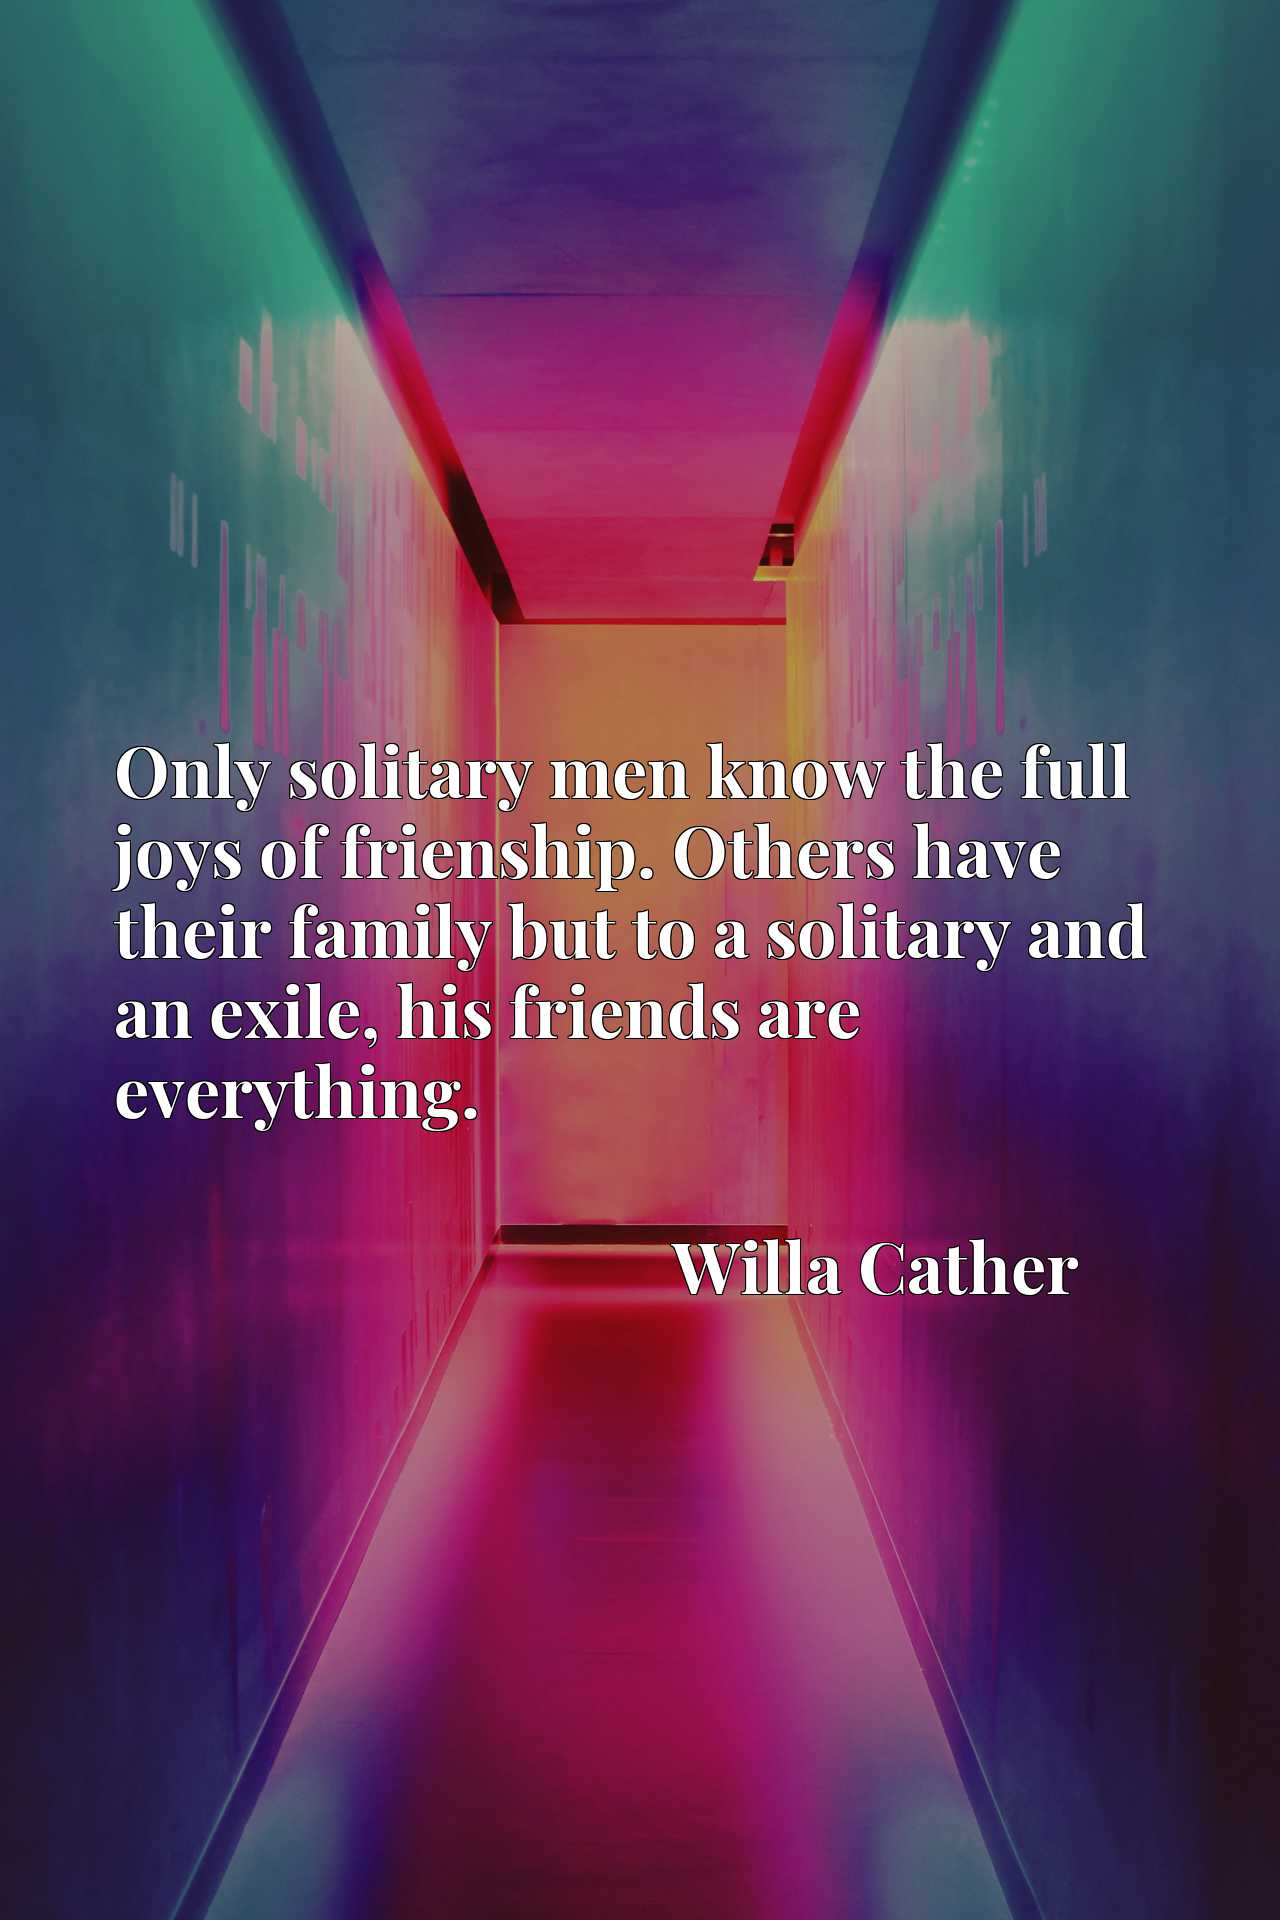 Only solitary men know the full joys of frienship. Others have their family but to a solitary and an exile, his friends are everything.